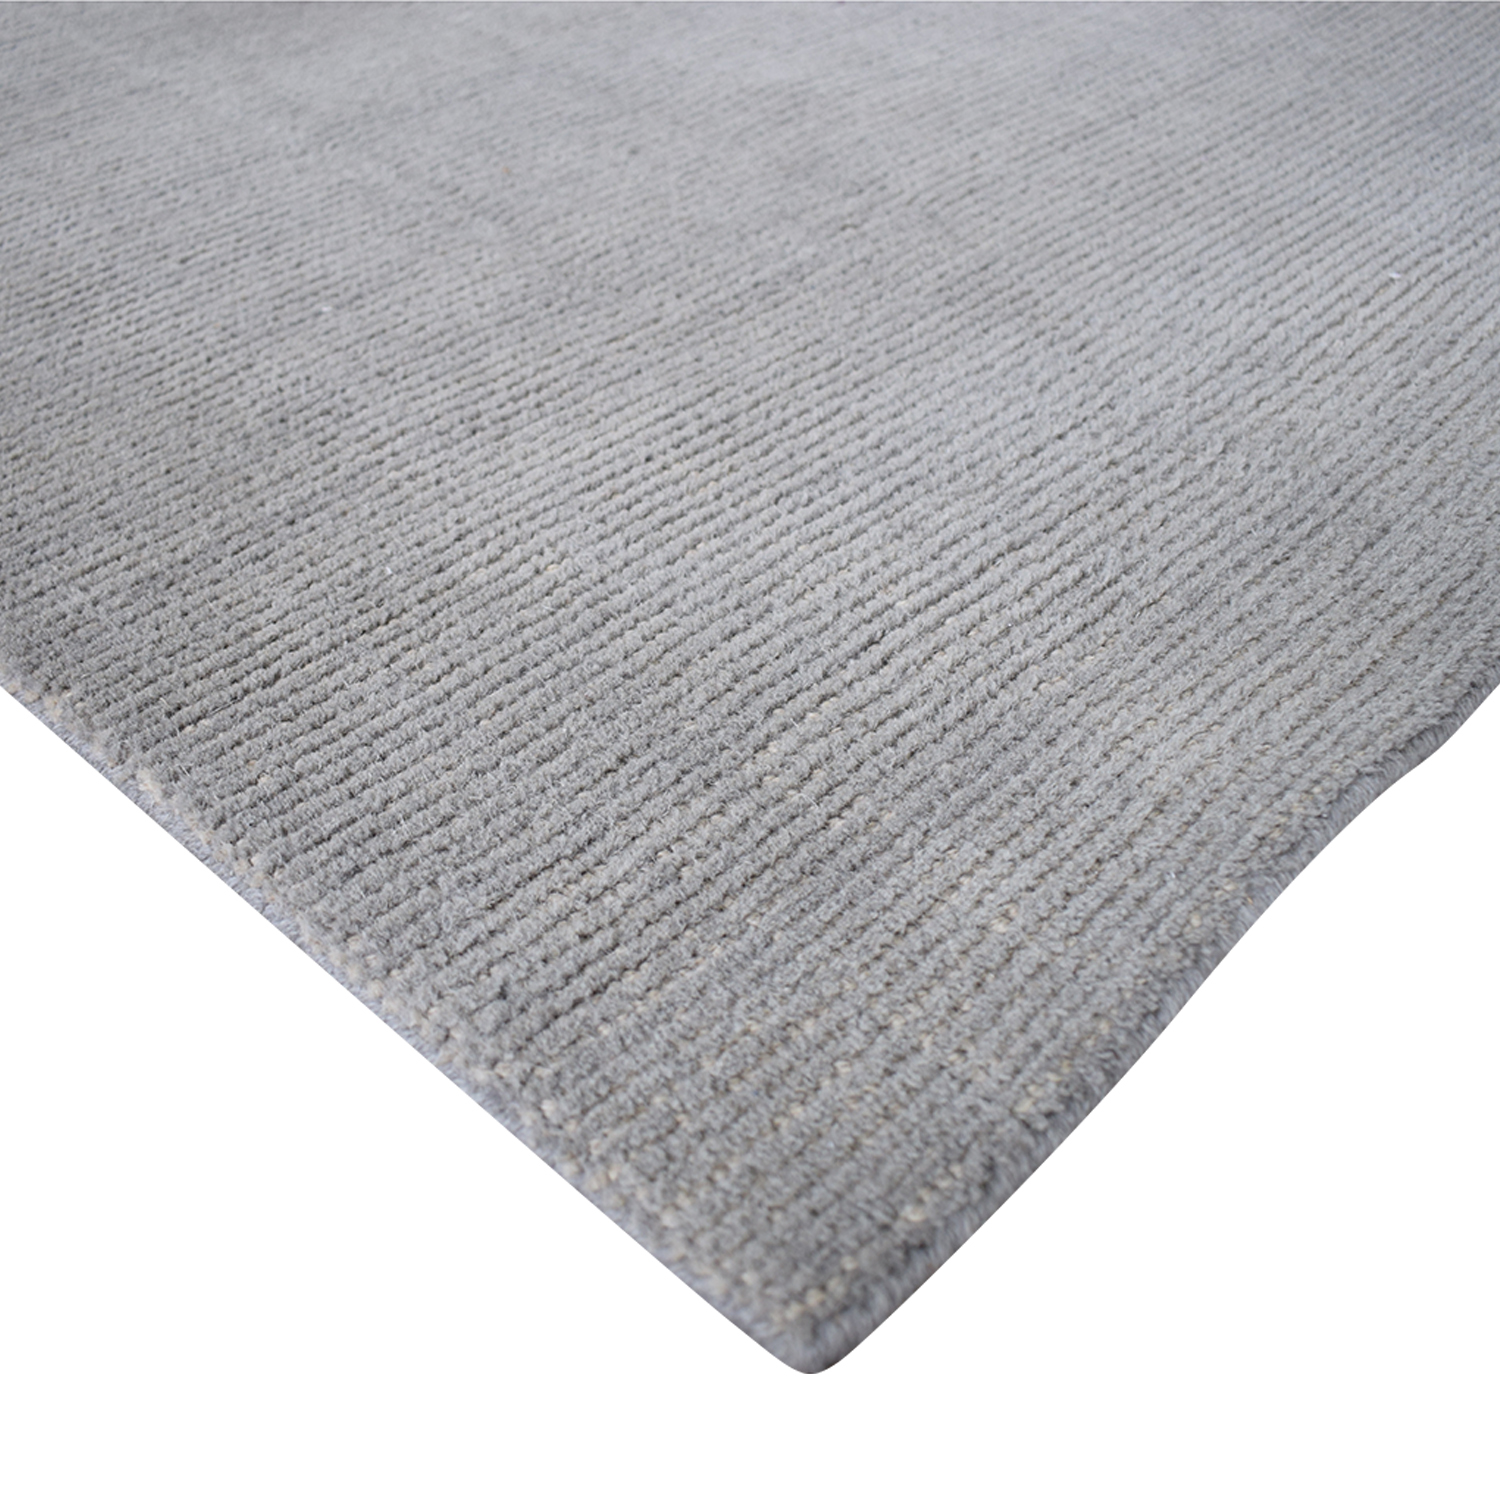 Restoration Hardware Ben Soleimani for Restoration Hardware Rug